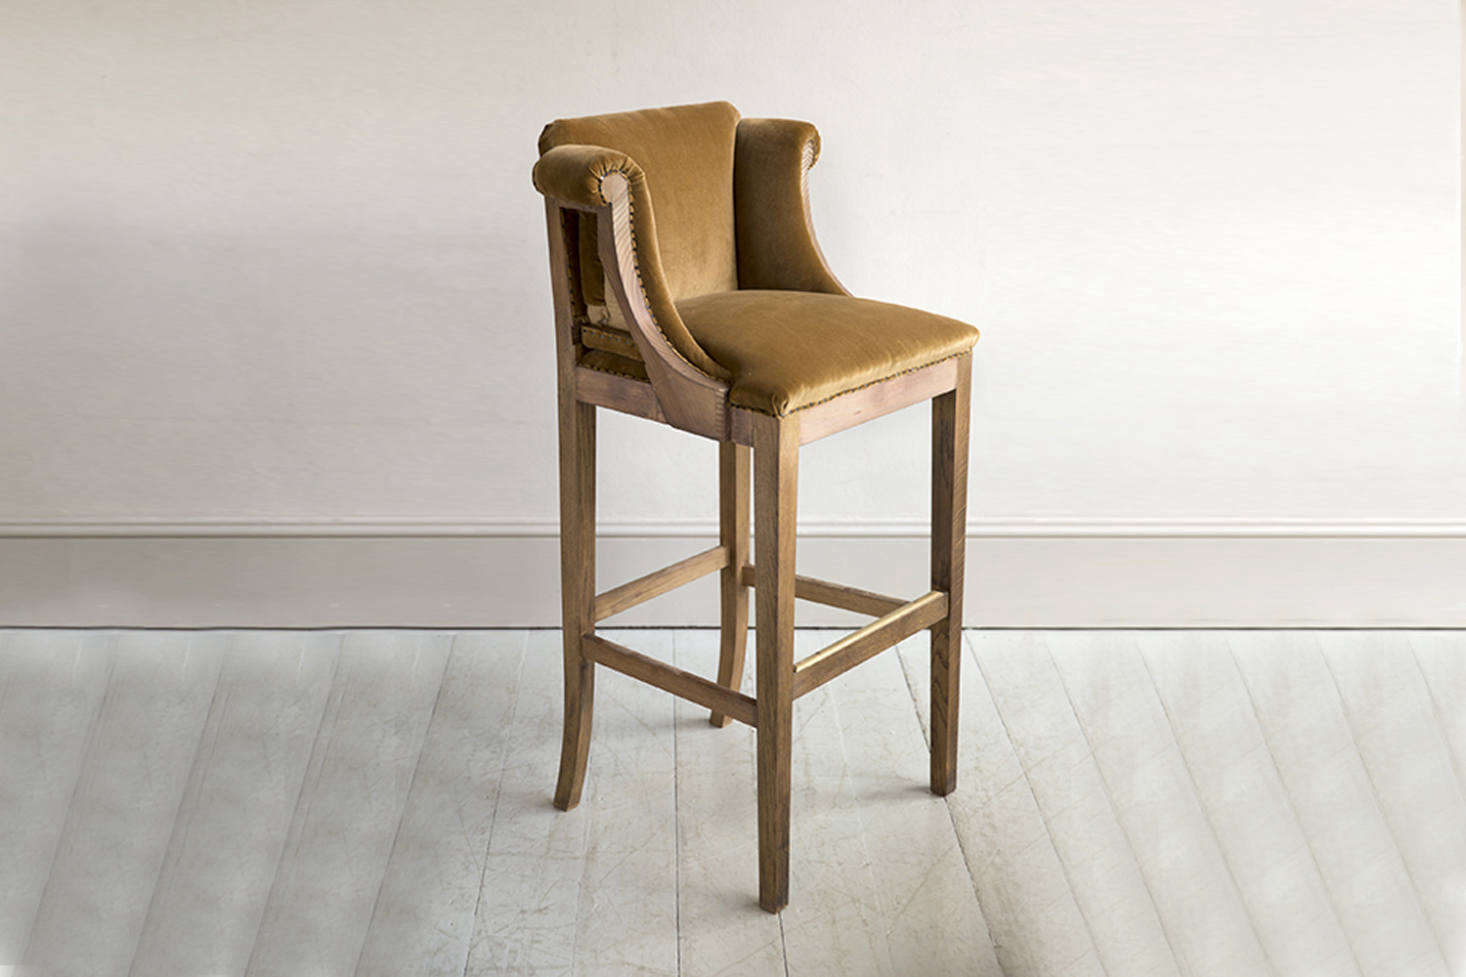 The upholstered barstool near the work island is a Howe design, the Whippet Bar Stool constructed from three different timbers and custom upholstery. Contact for price and ordering information.